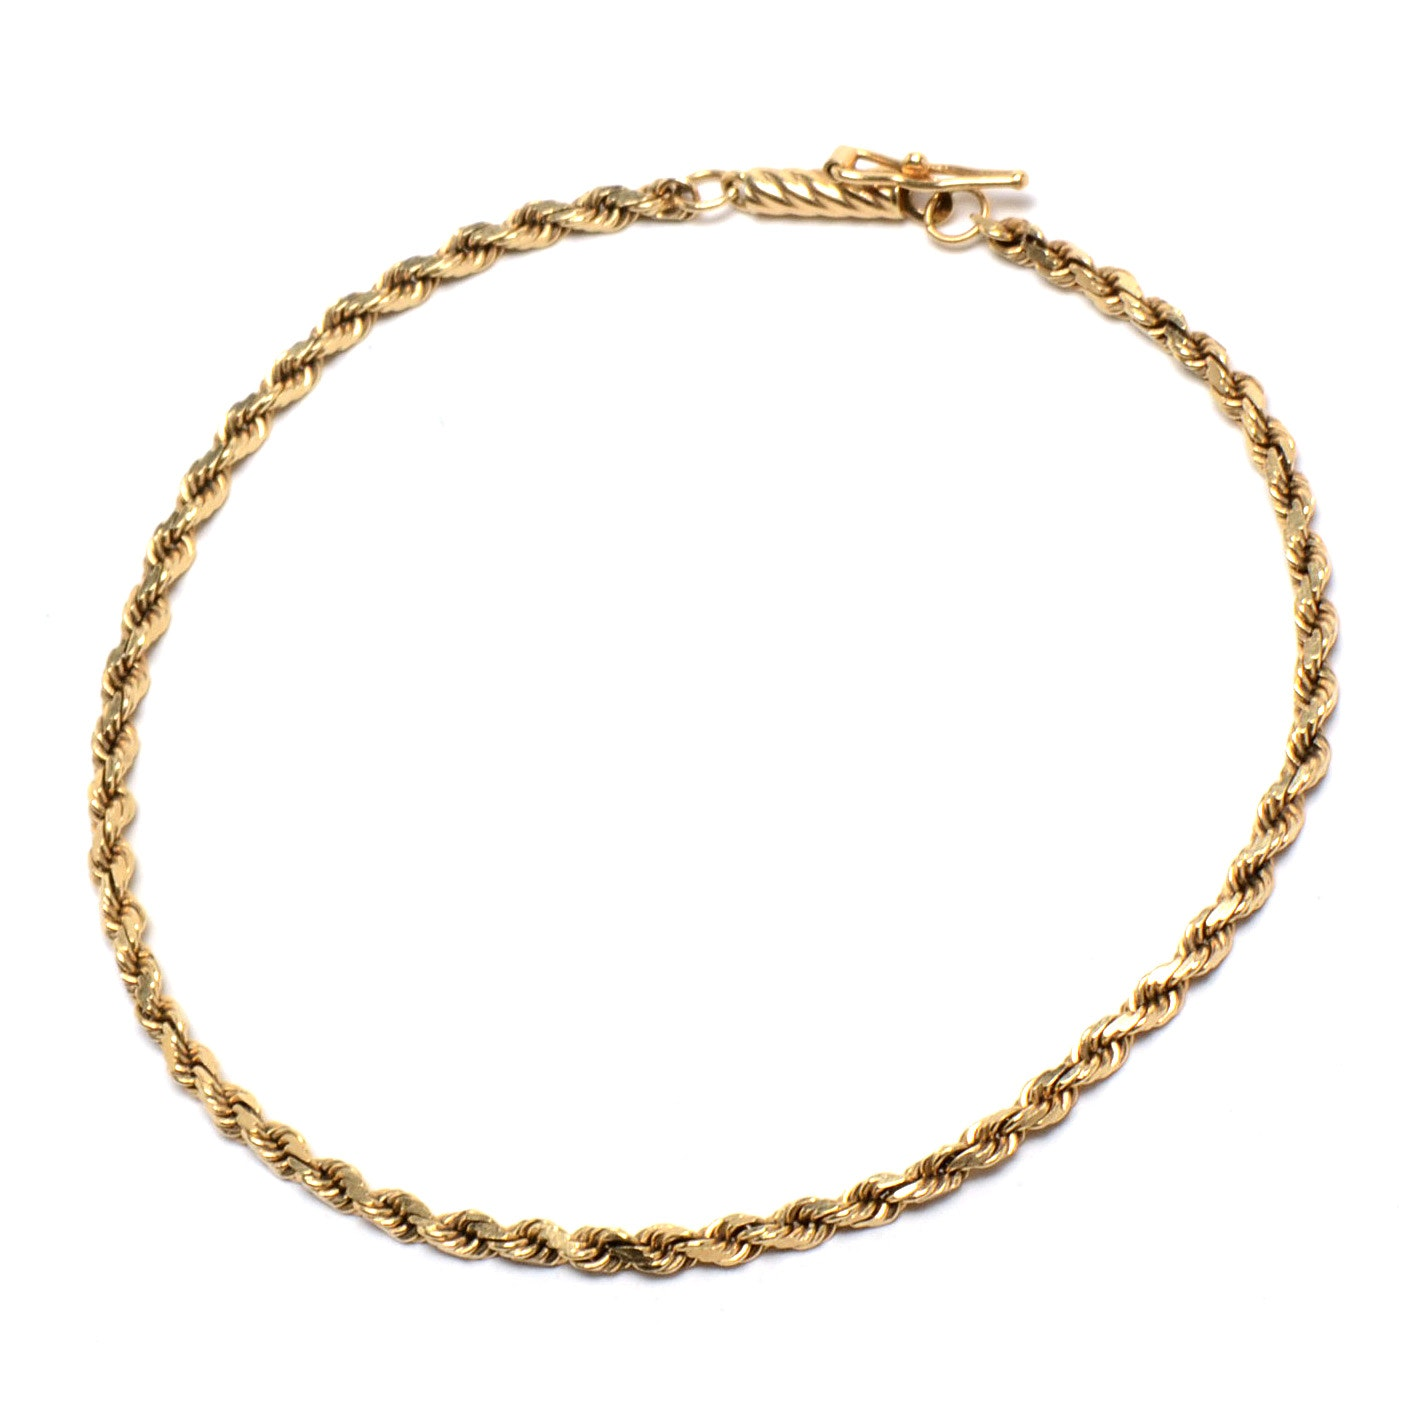 14K Yellow Gold Twisted Rope Chain Bracelet